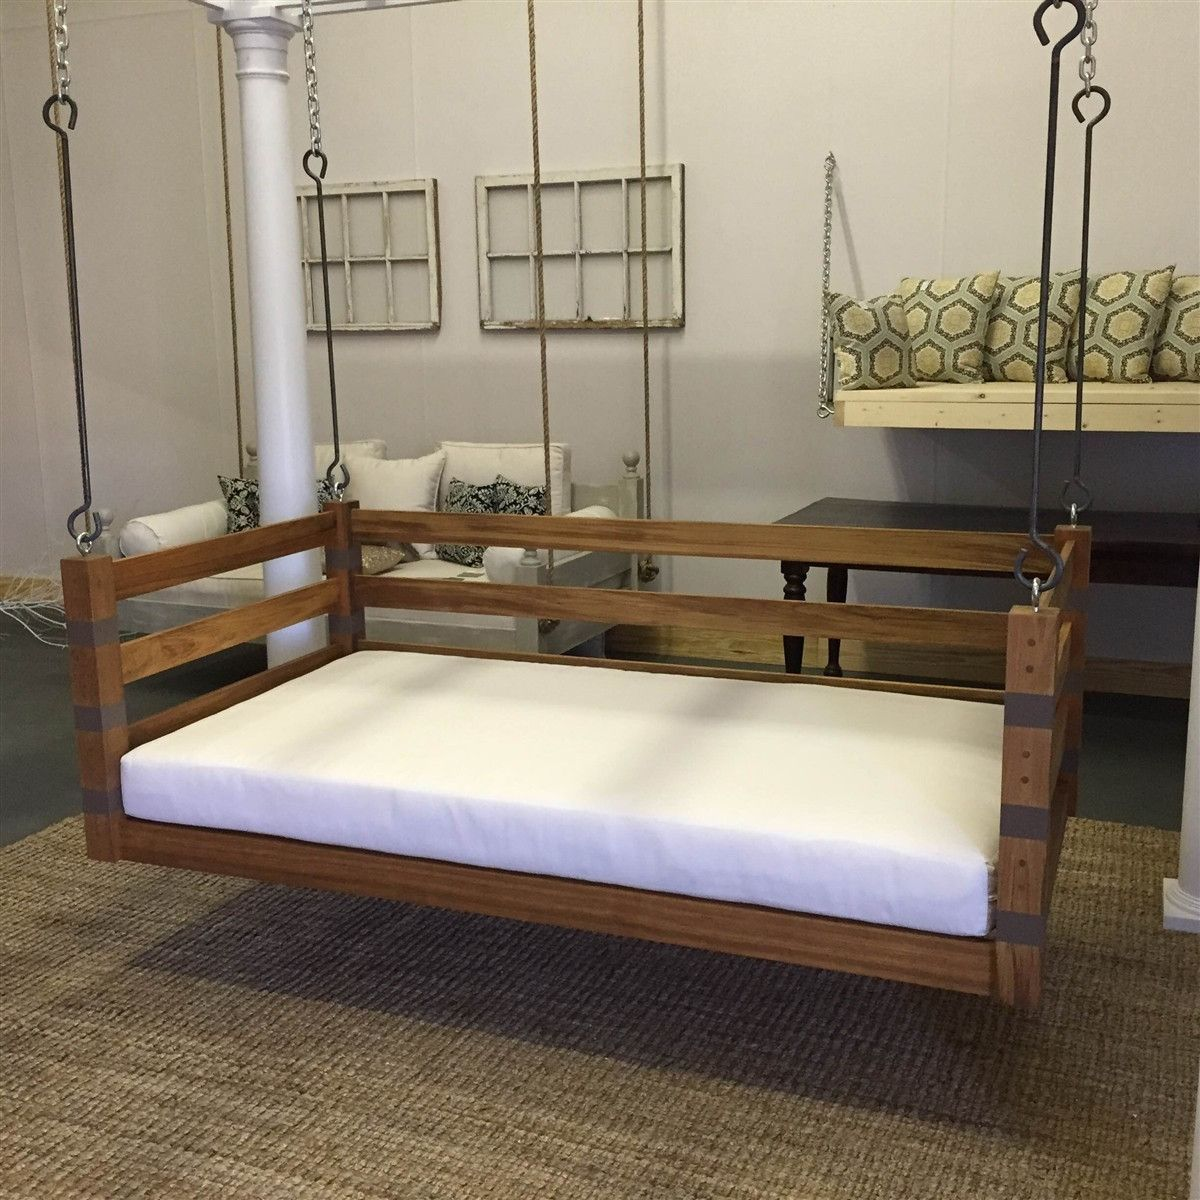 The Ion Porch Swing Bed Porch swing, Porch bed, Home